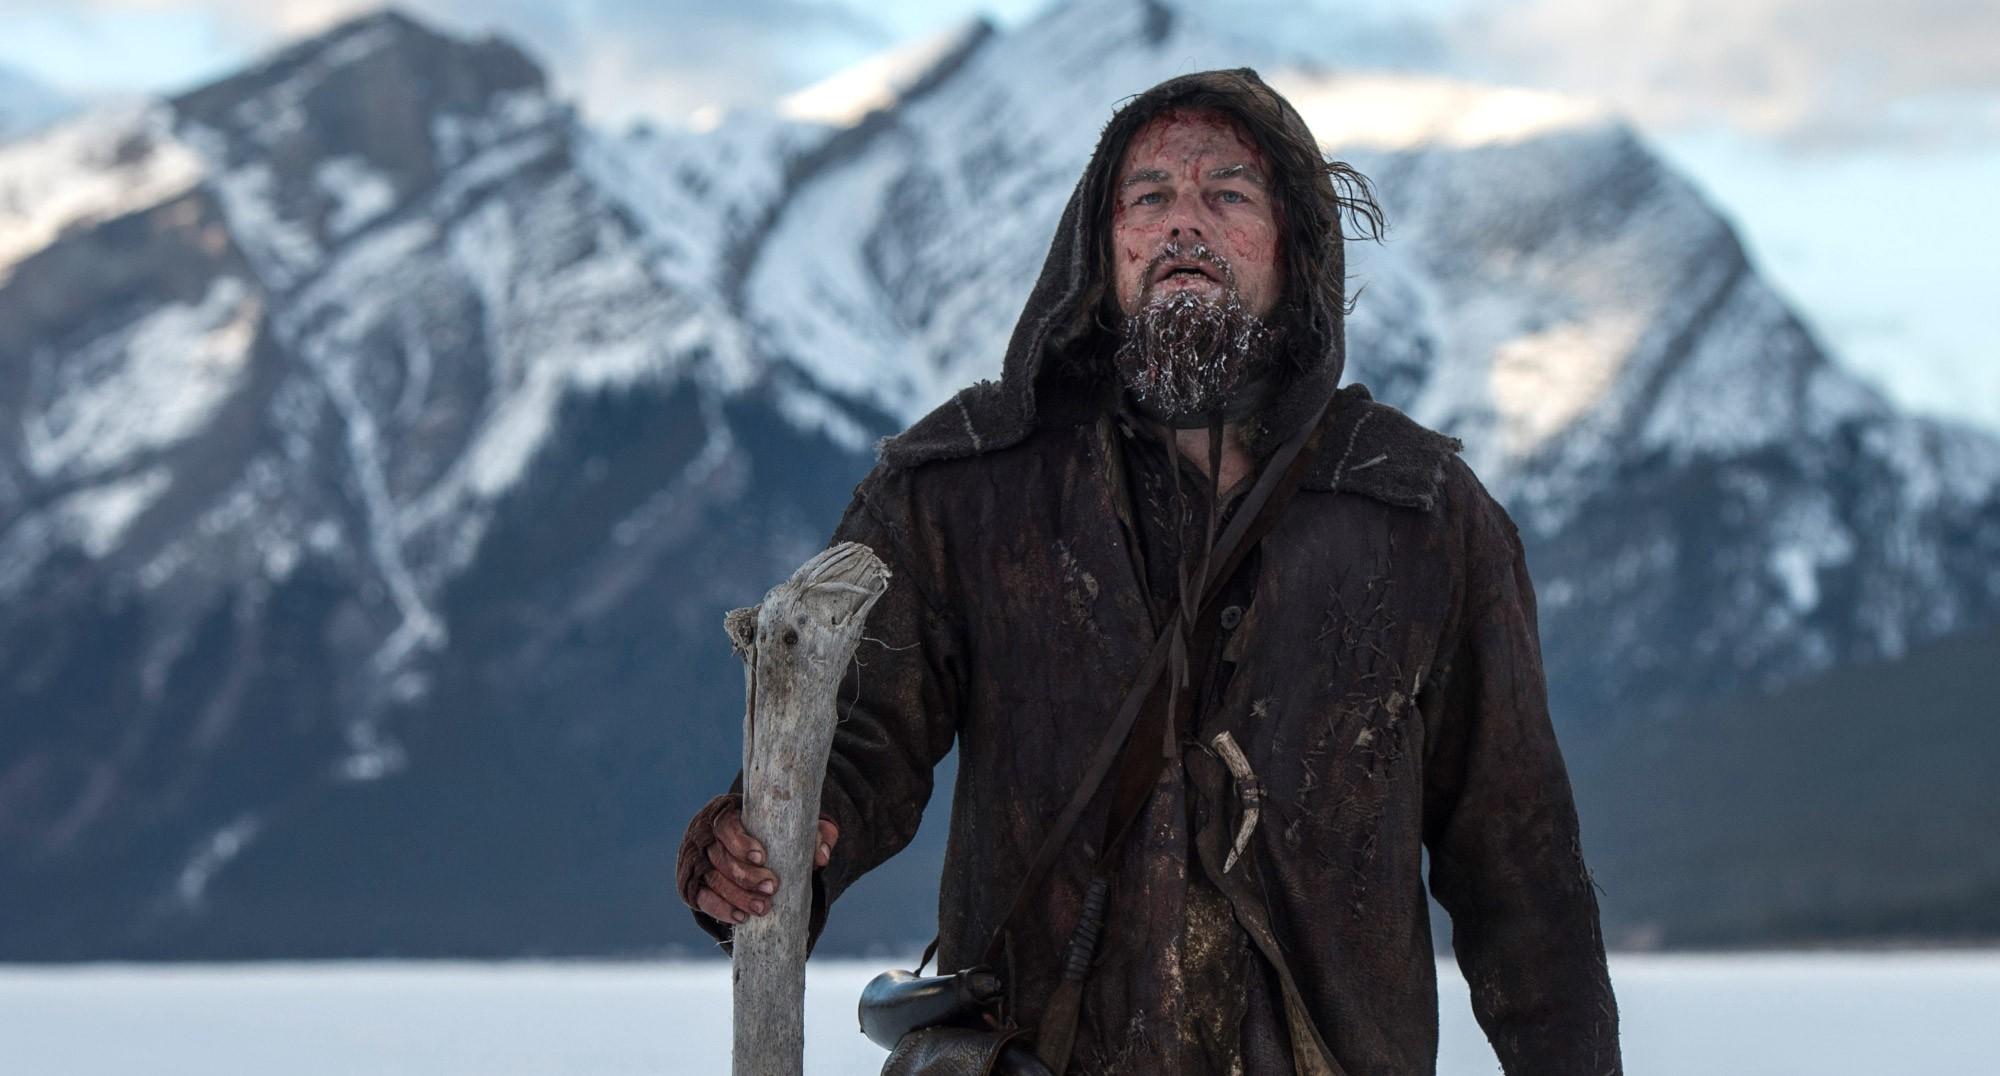 Leonardo DiCaprio stars in 'The Revenant', directed by Alejandro Iñárritu.